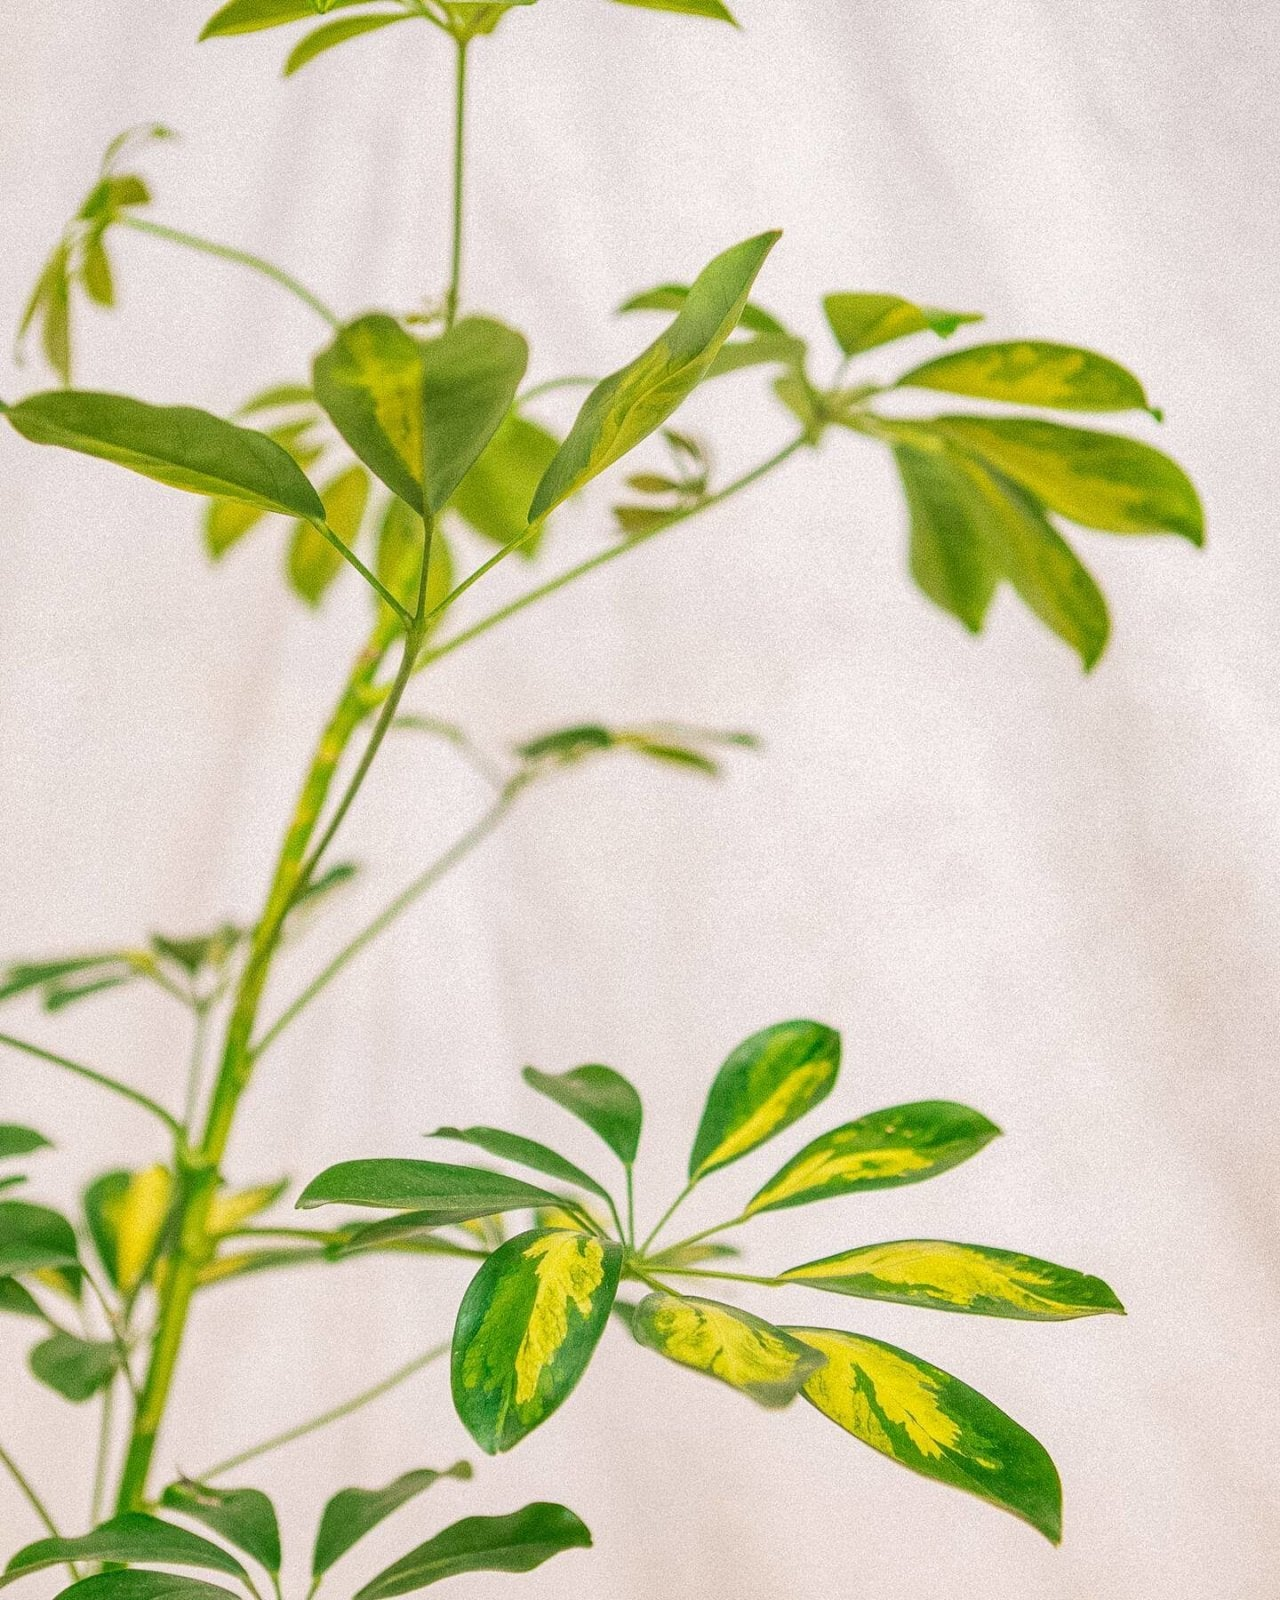 Schefflera Arboricola Variegata, Plant Delivery, The Unlikely Florist